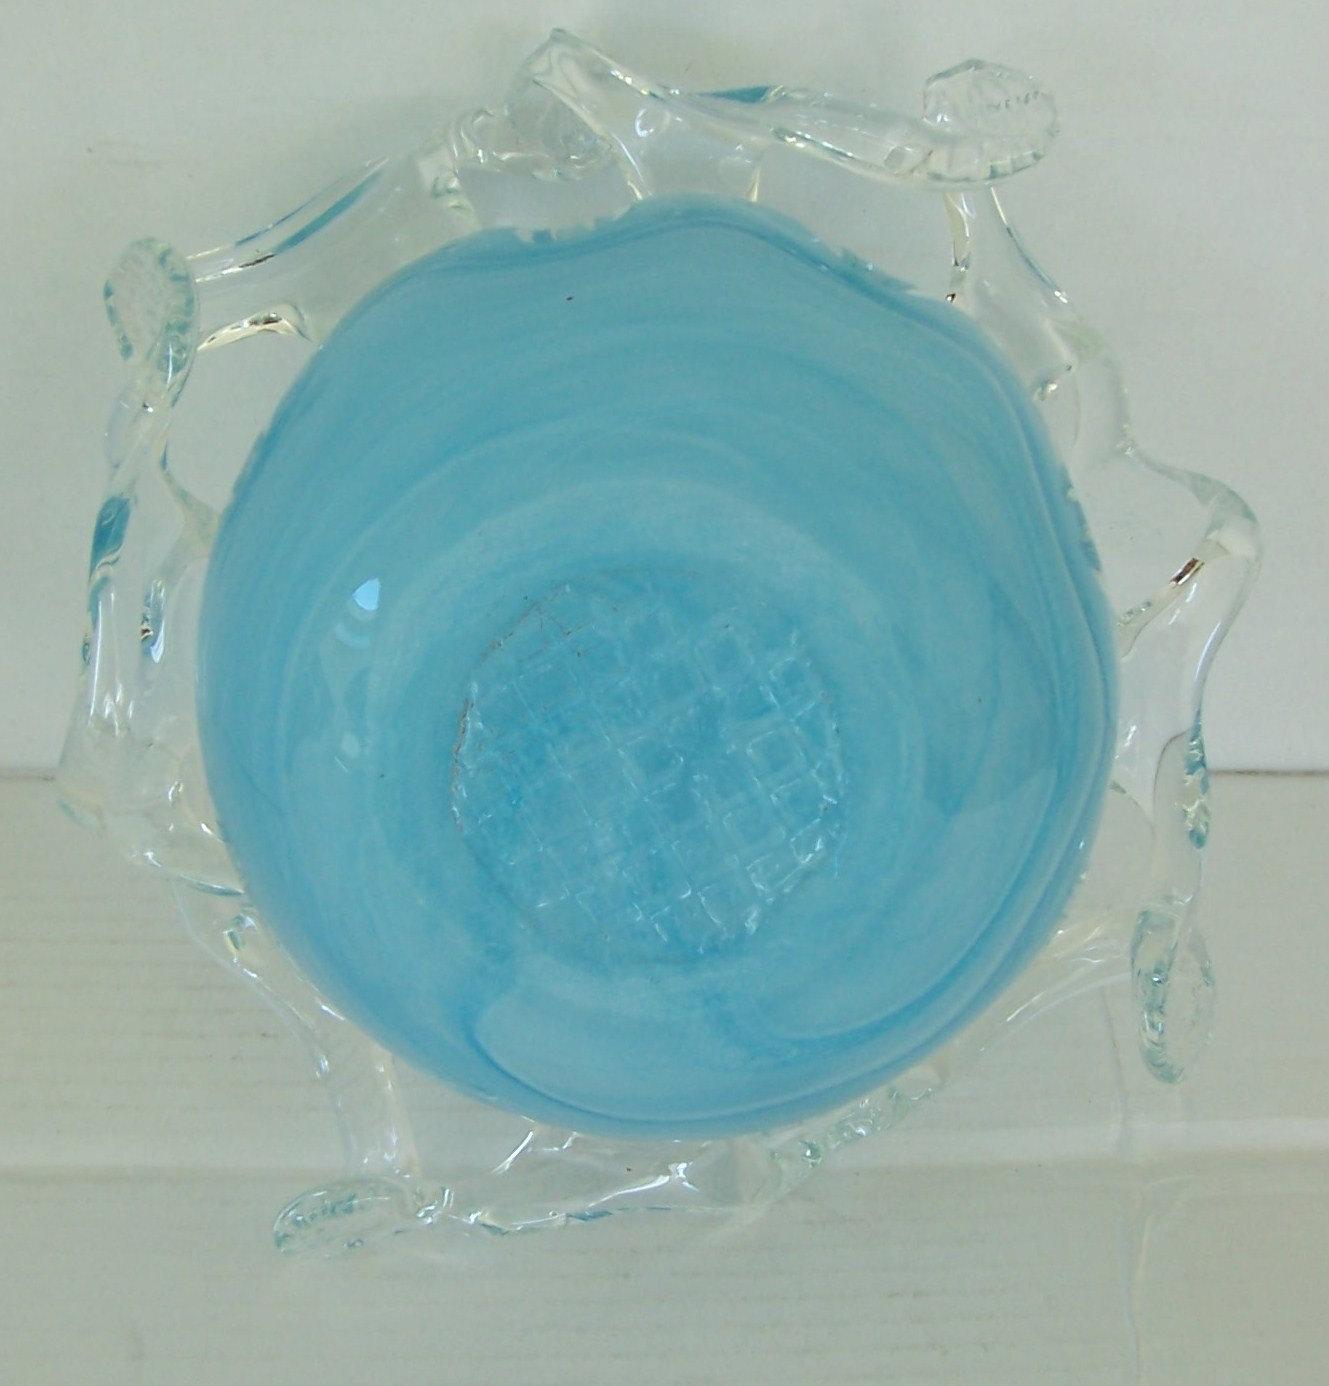 MURANO GLASSWARE Handblown Abstract Art Light Blue Glass Table Display